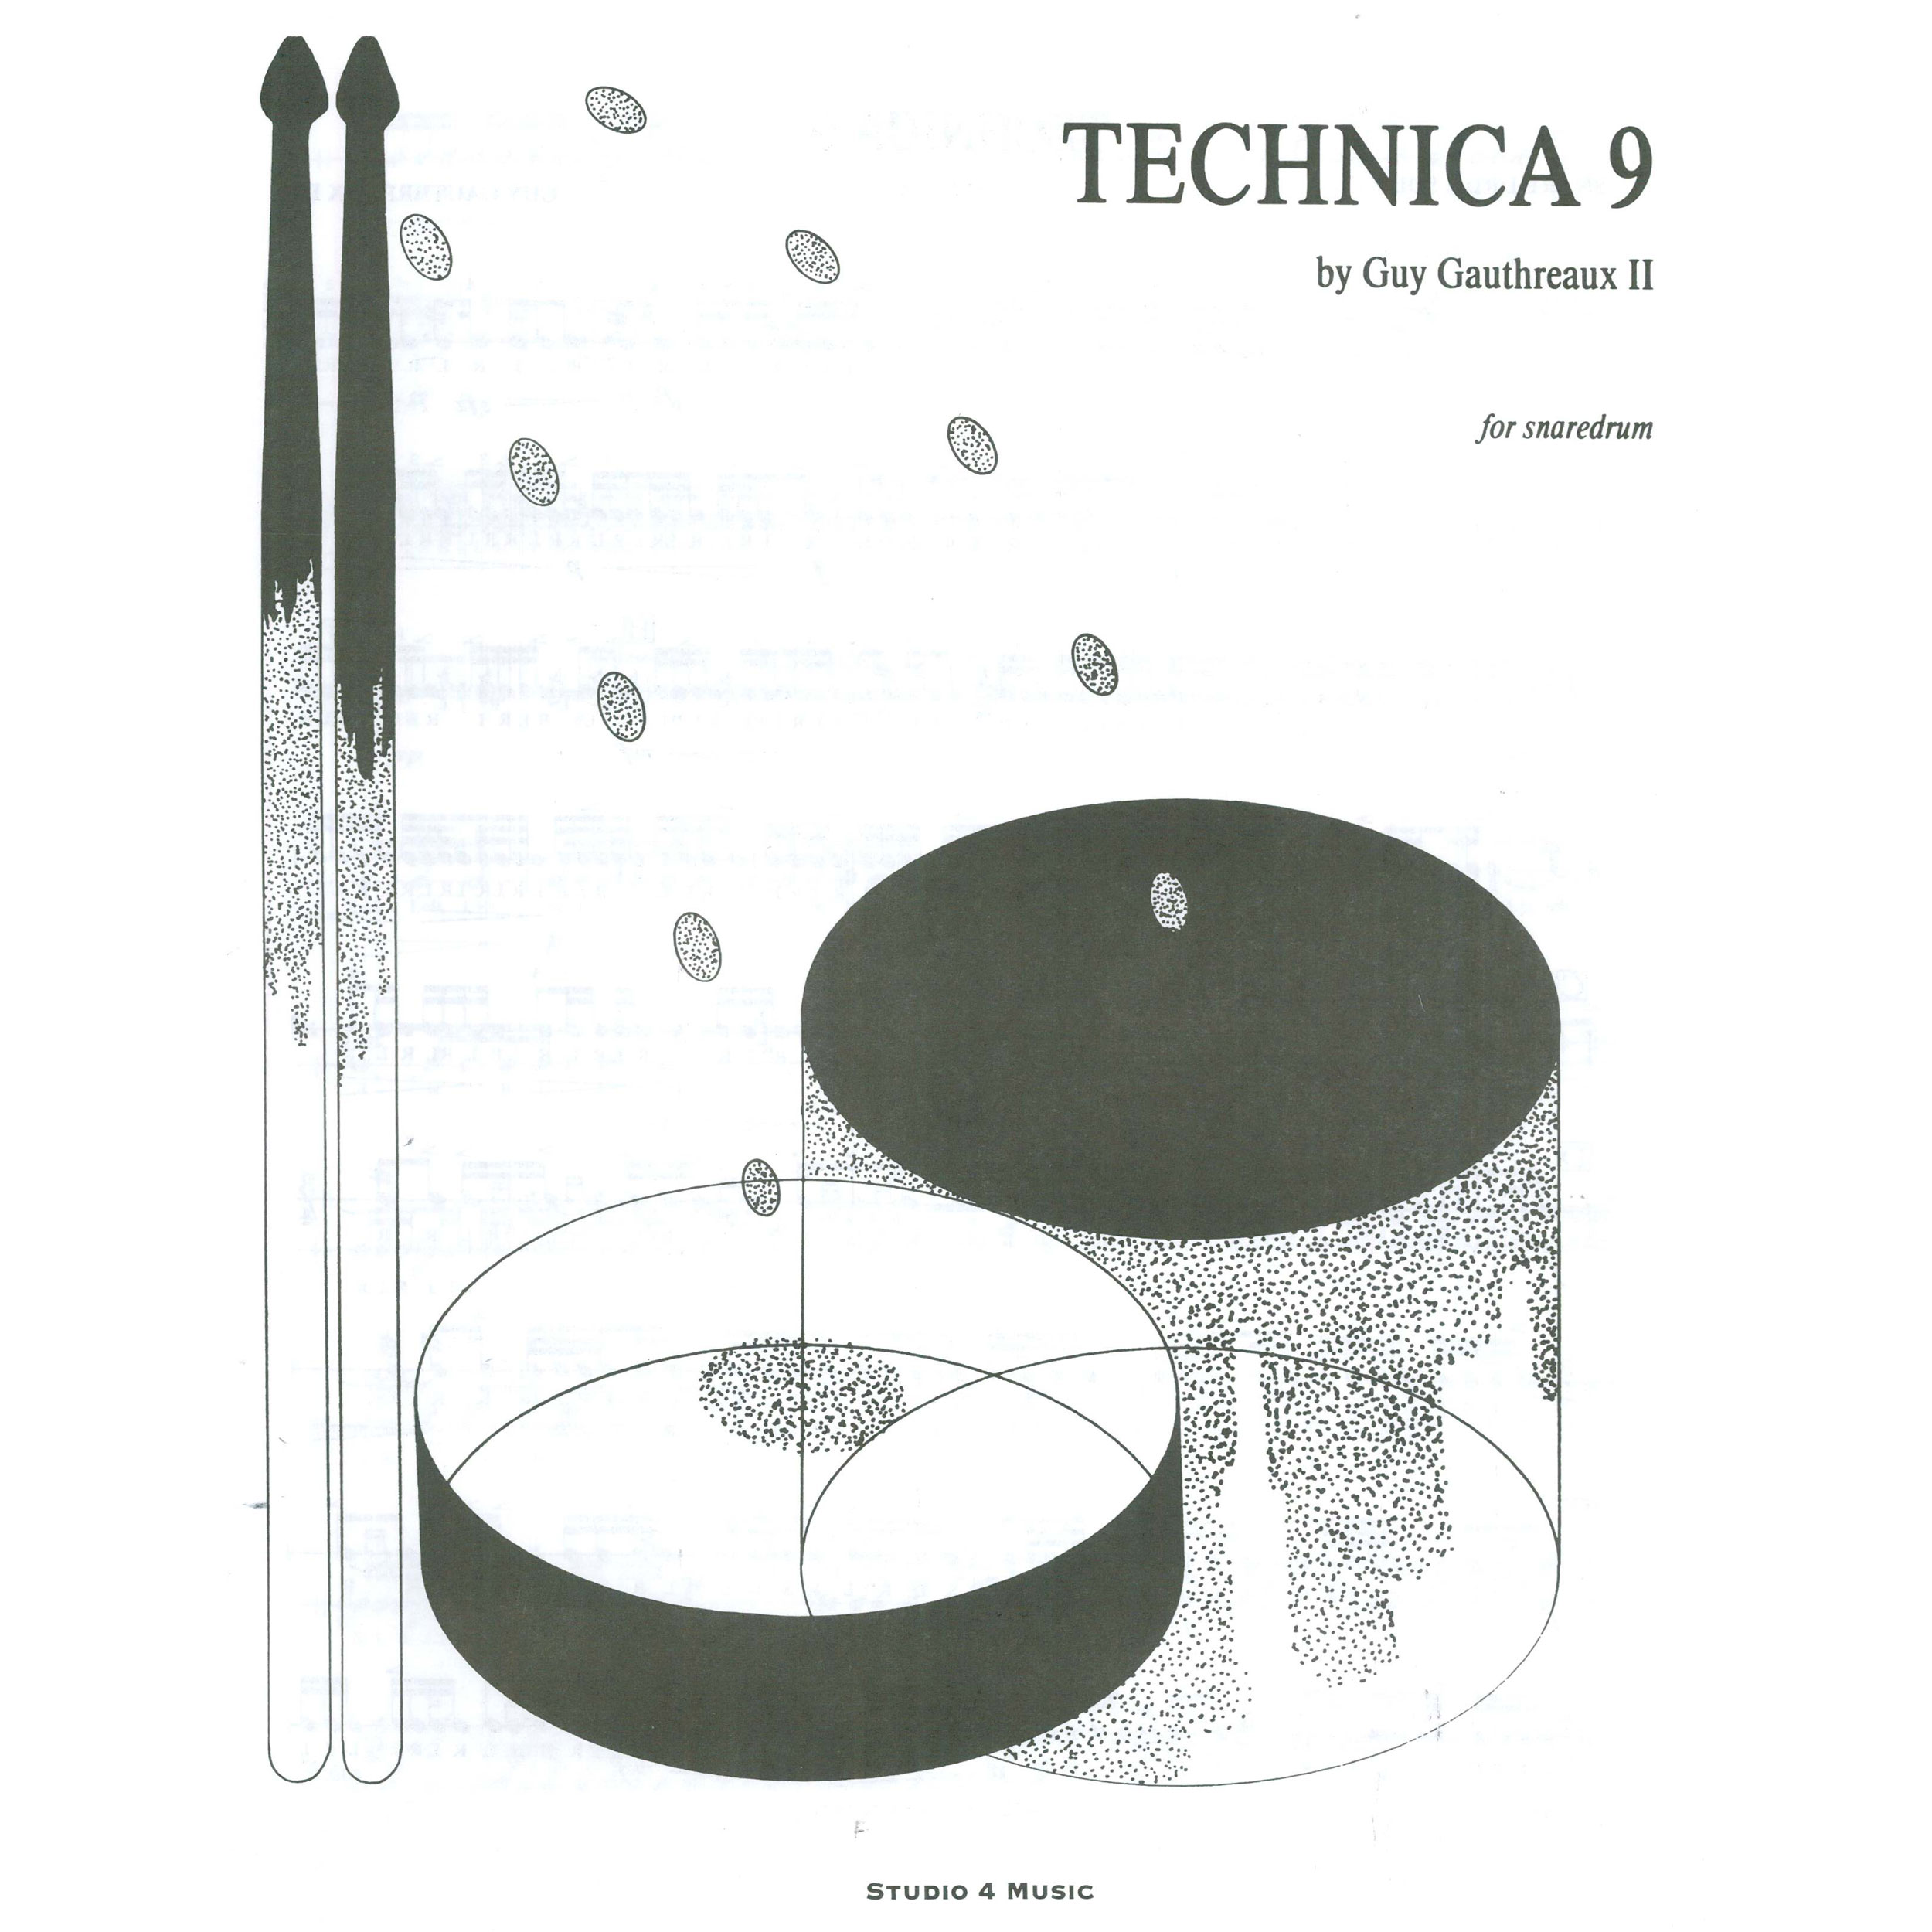 Technica 9 by Guy Gauthreaux